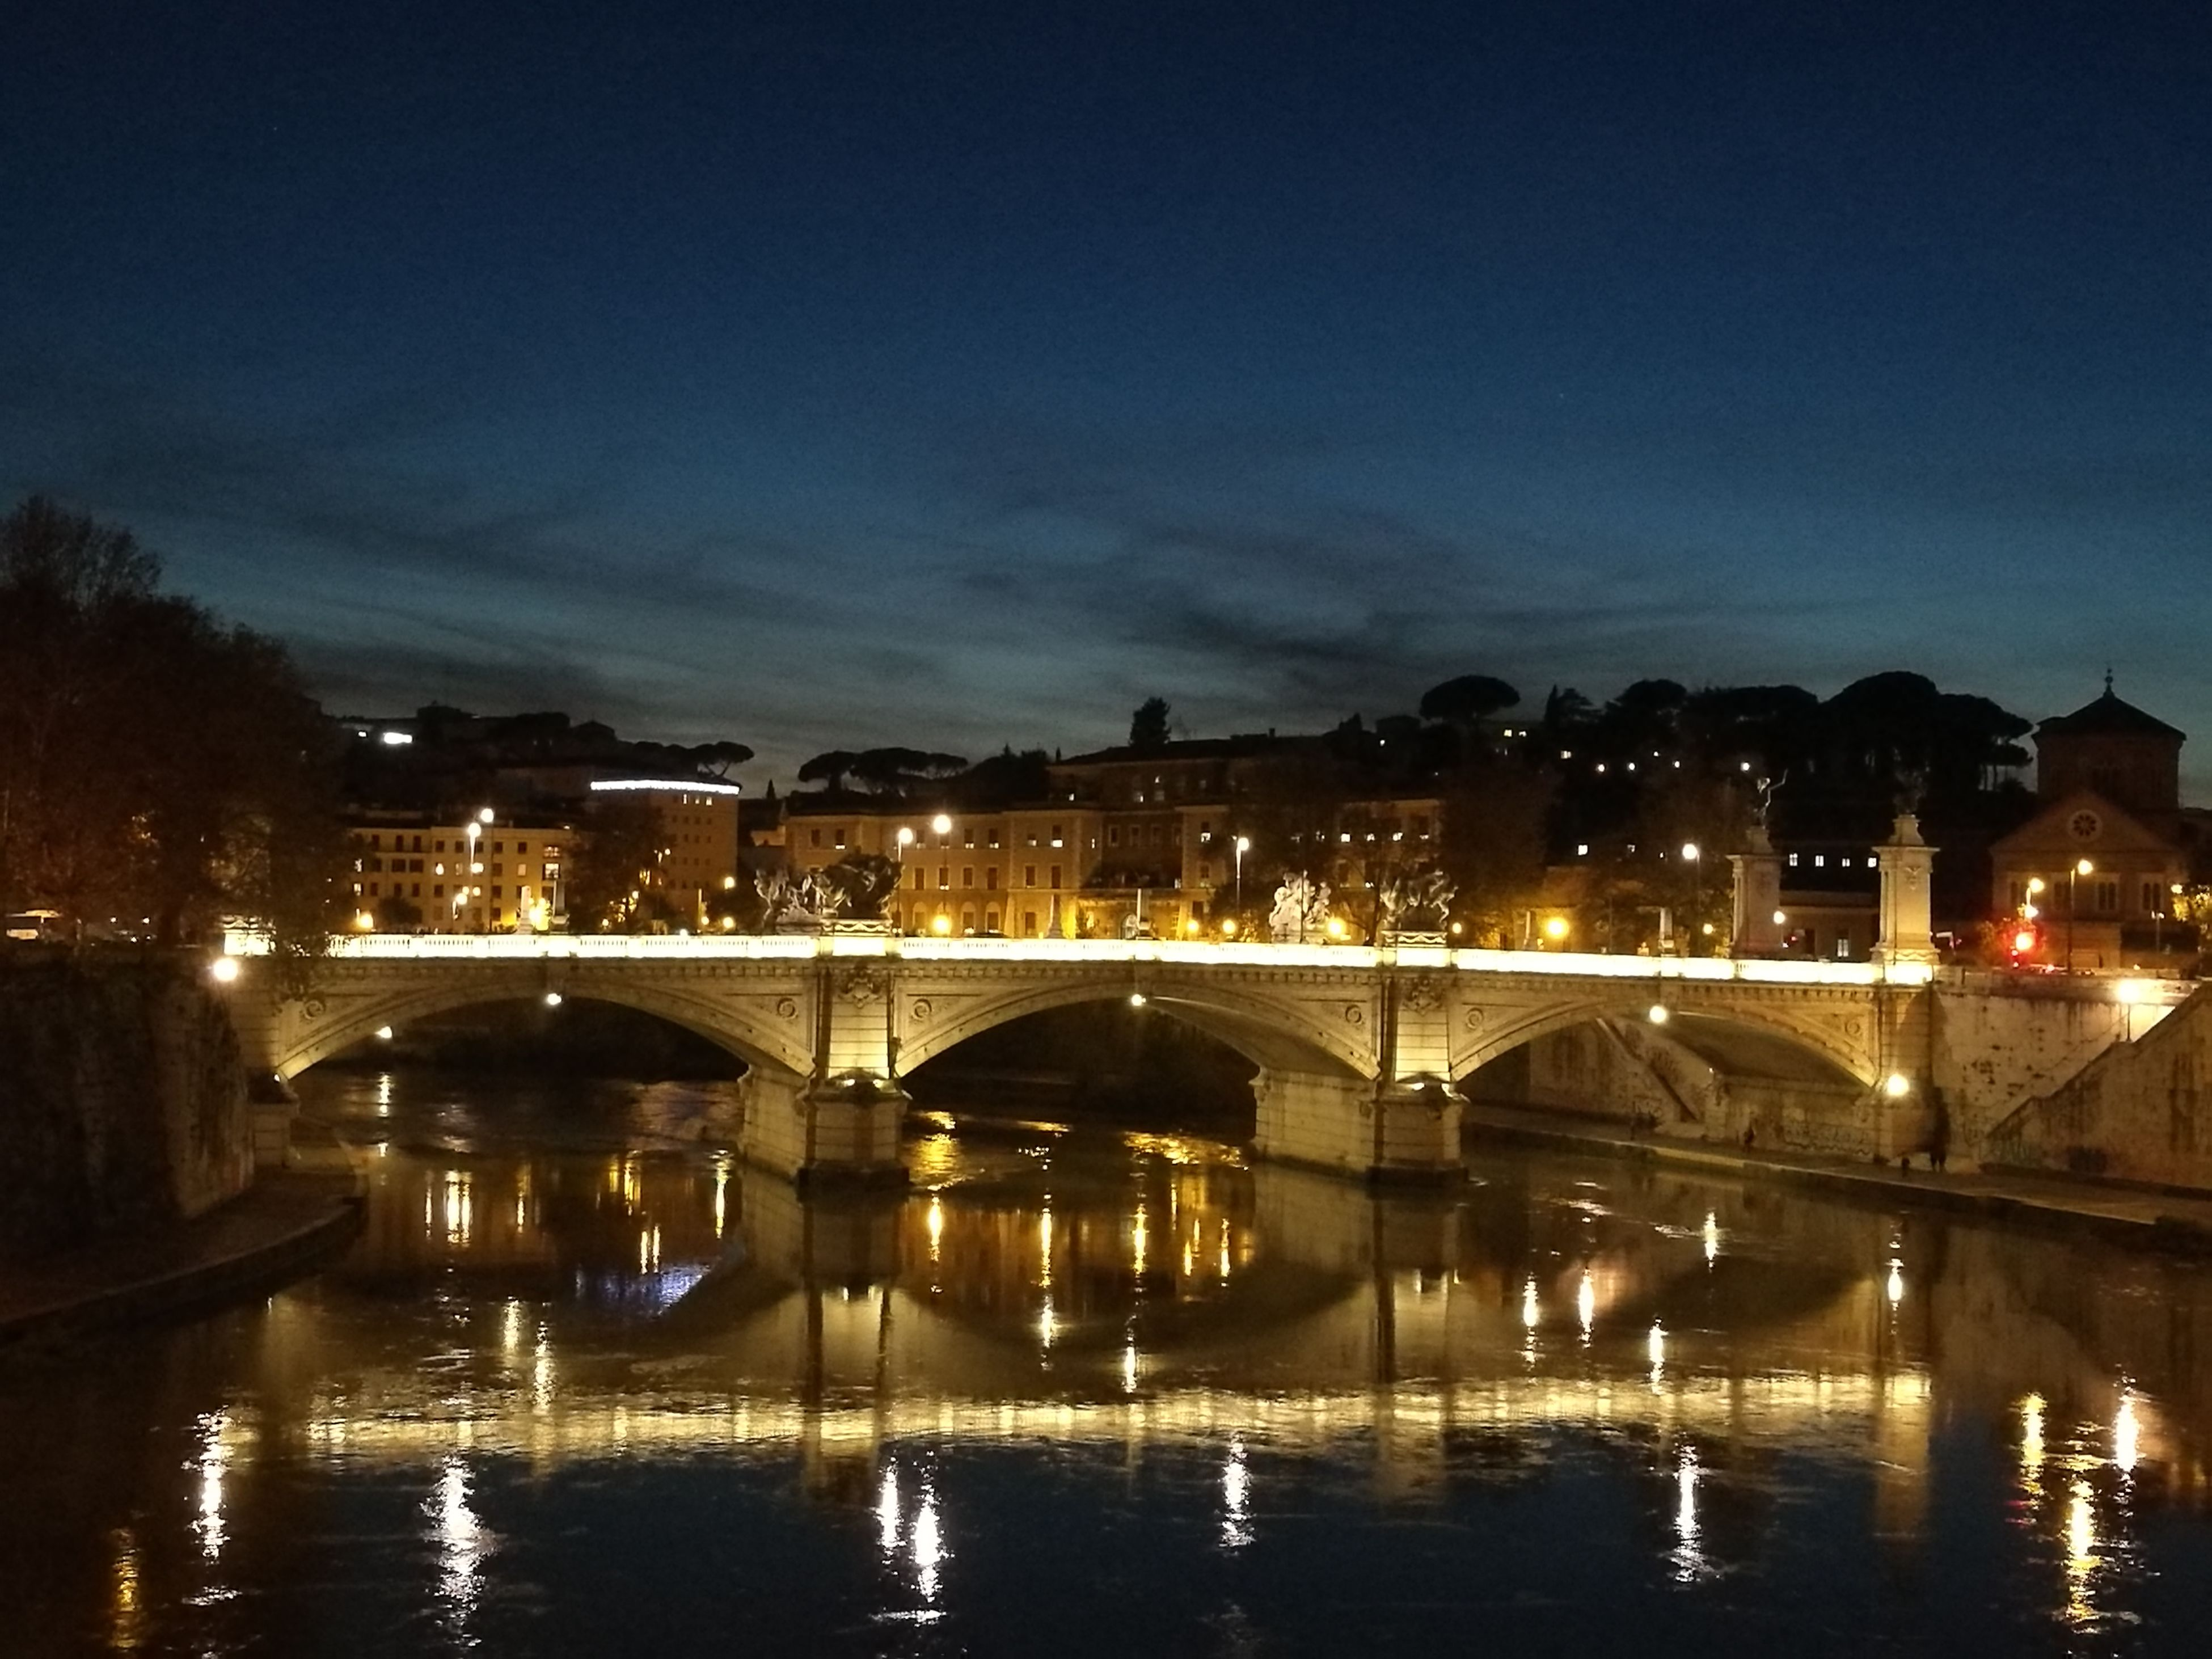 bridge - man made structure, architecture, connection, built structure, reflection, illuminated, transportation, water, night, city, river, building exterior, travel destinations, outdoors, sky, no people, public transportation, tree, star - space